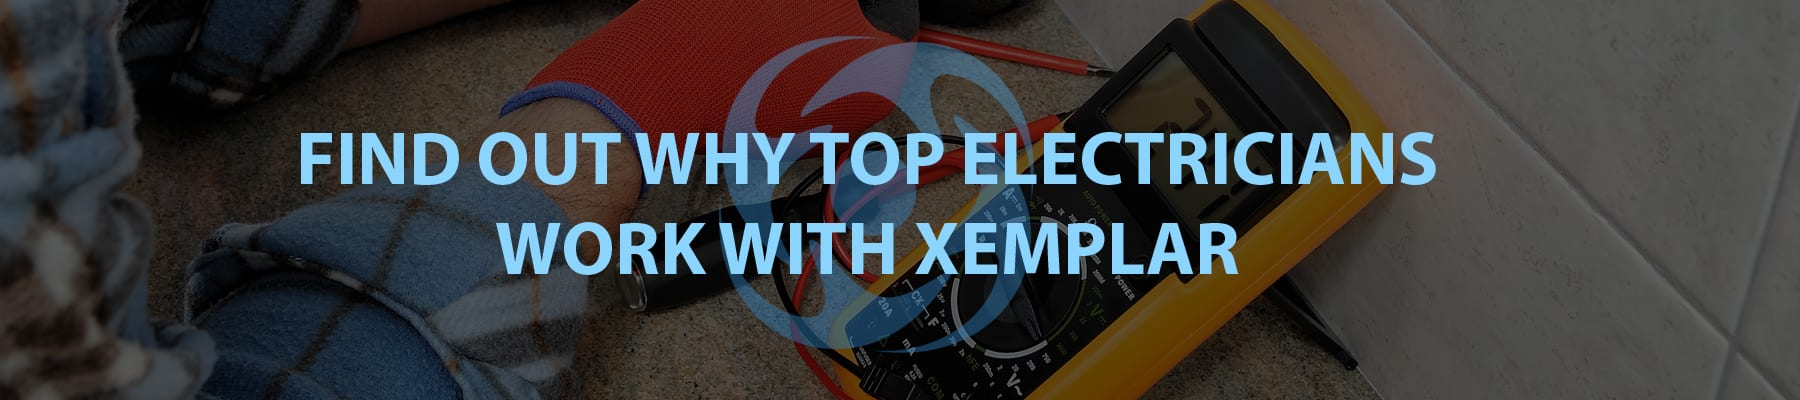 Electrician Jobs | Xemplar